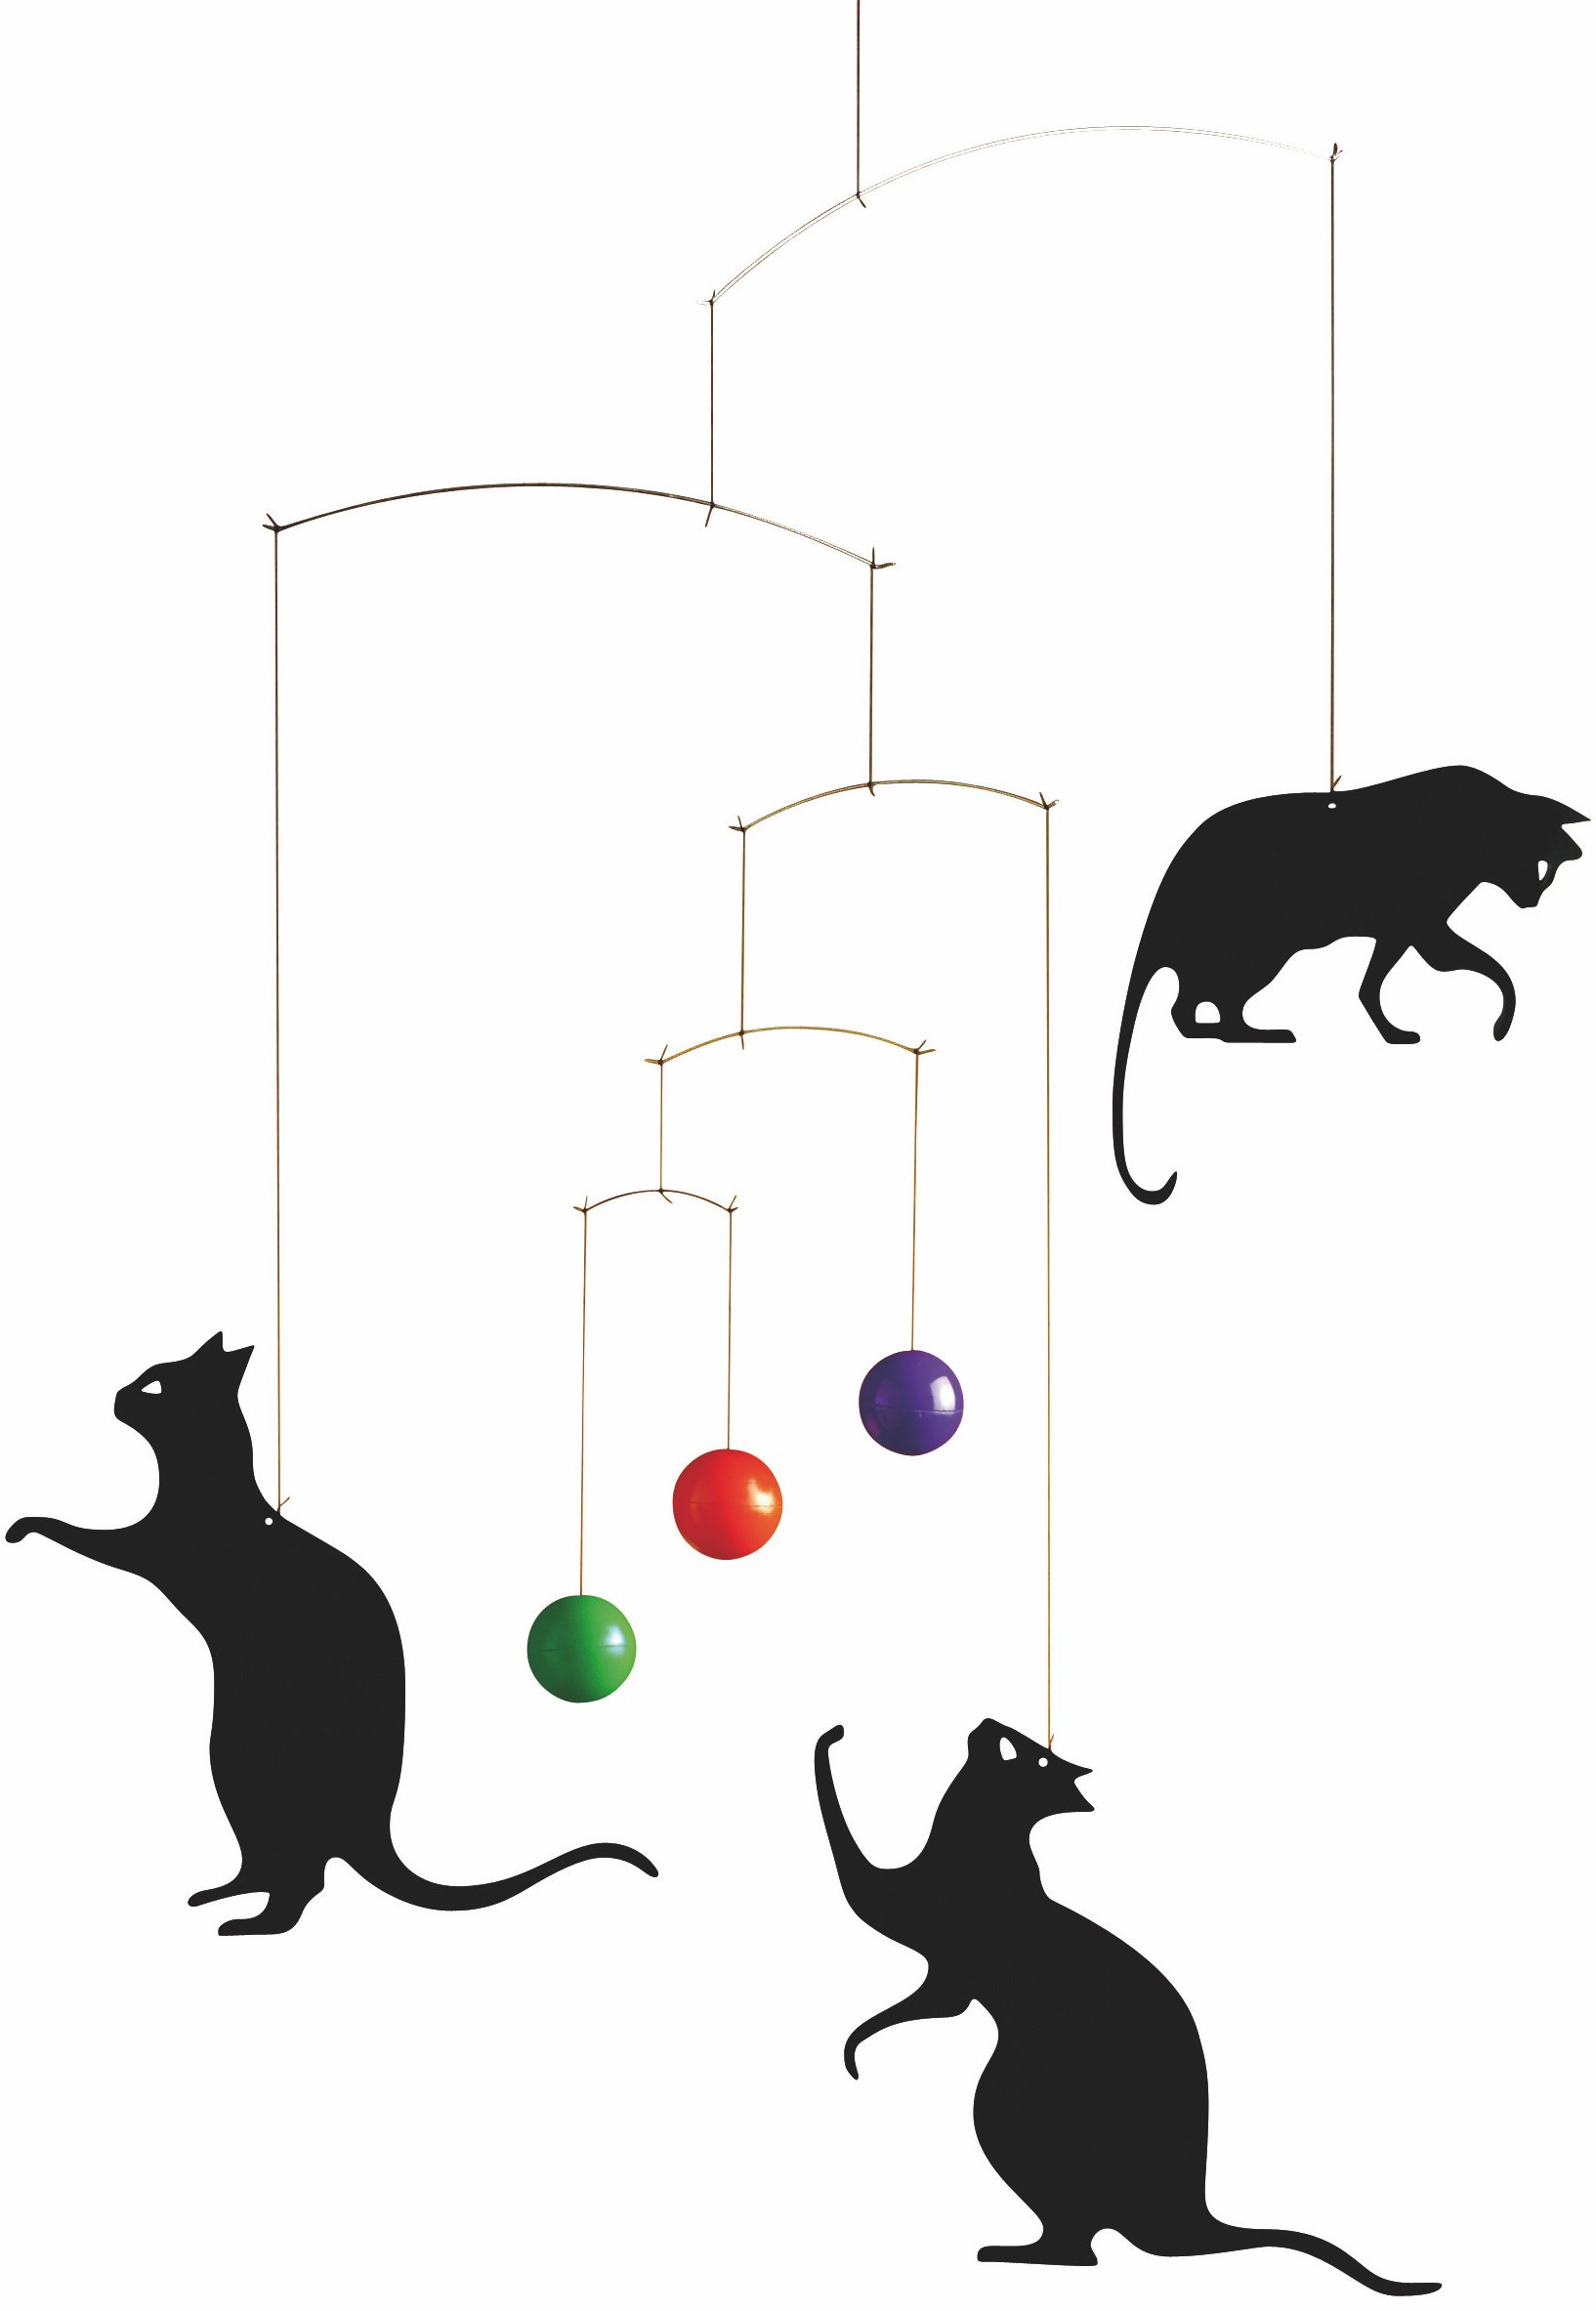 Flensted Mobiles Feline Fun Hanging Mobile - 22 Inches Plastic by Flensted Mobiles